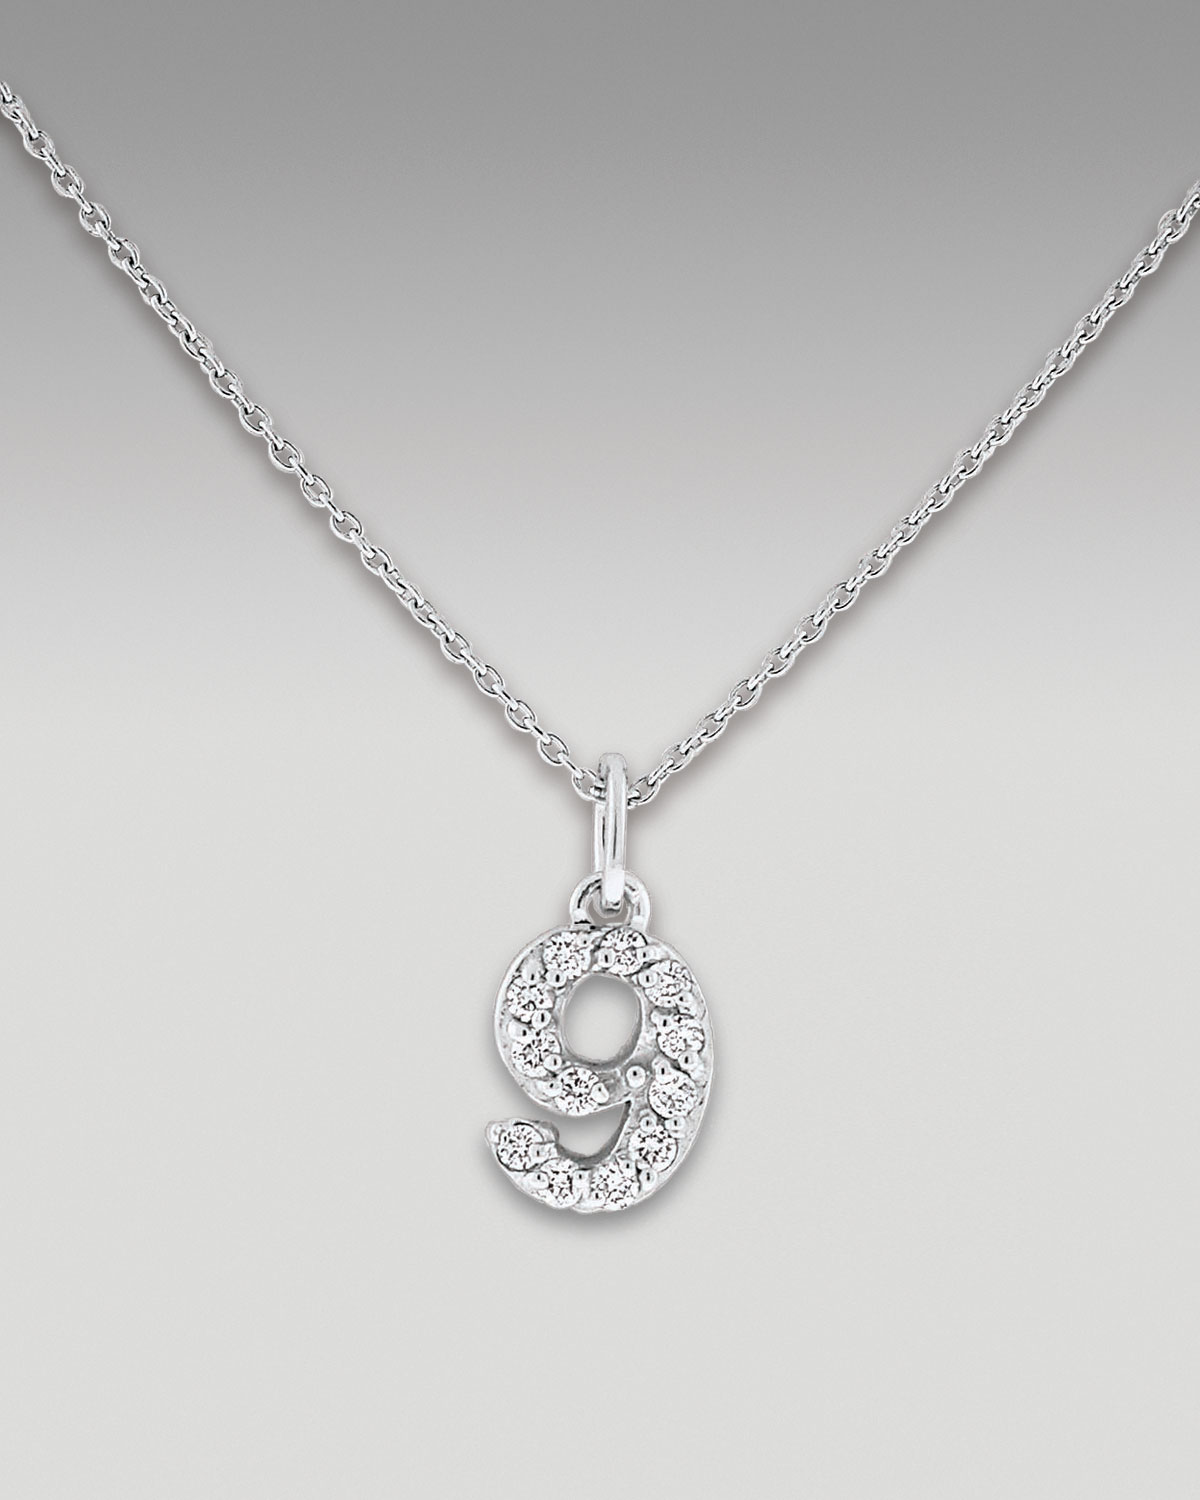 Lyst kc designs diamond number necklace 9 in white gallery mozeypictures Images